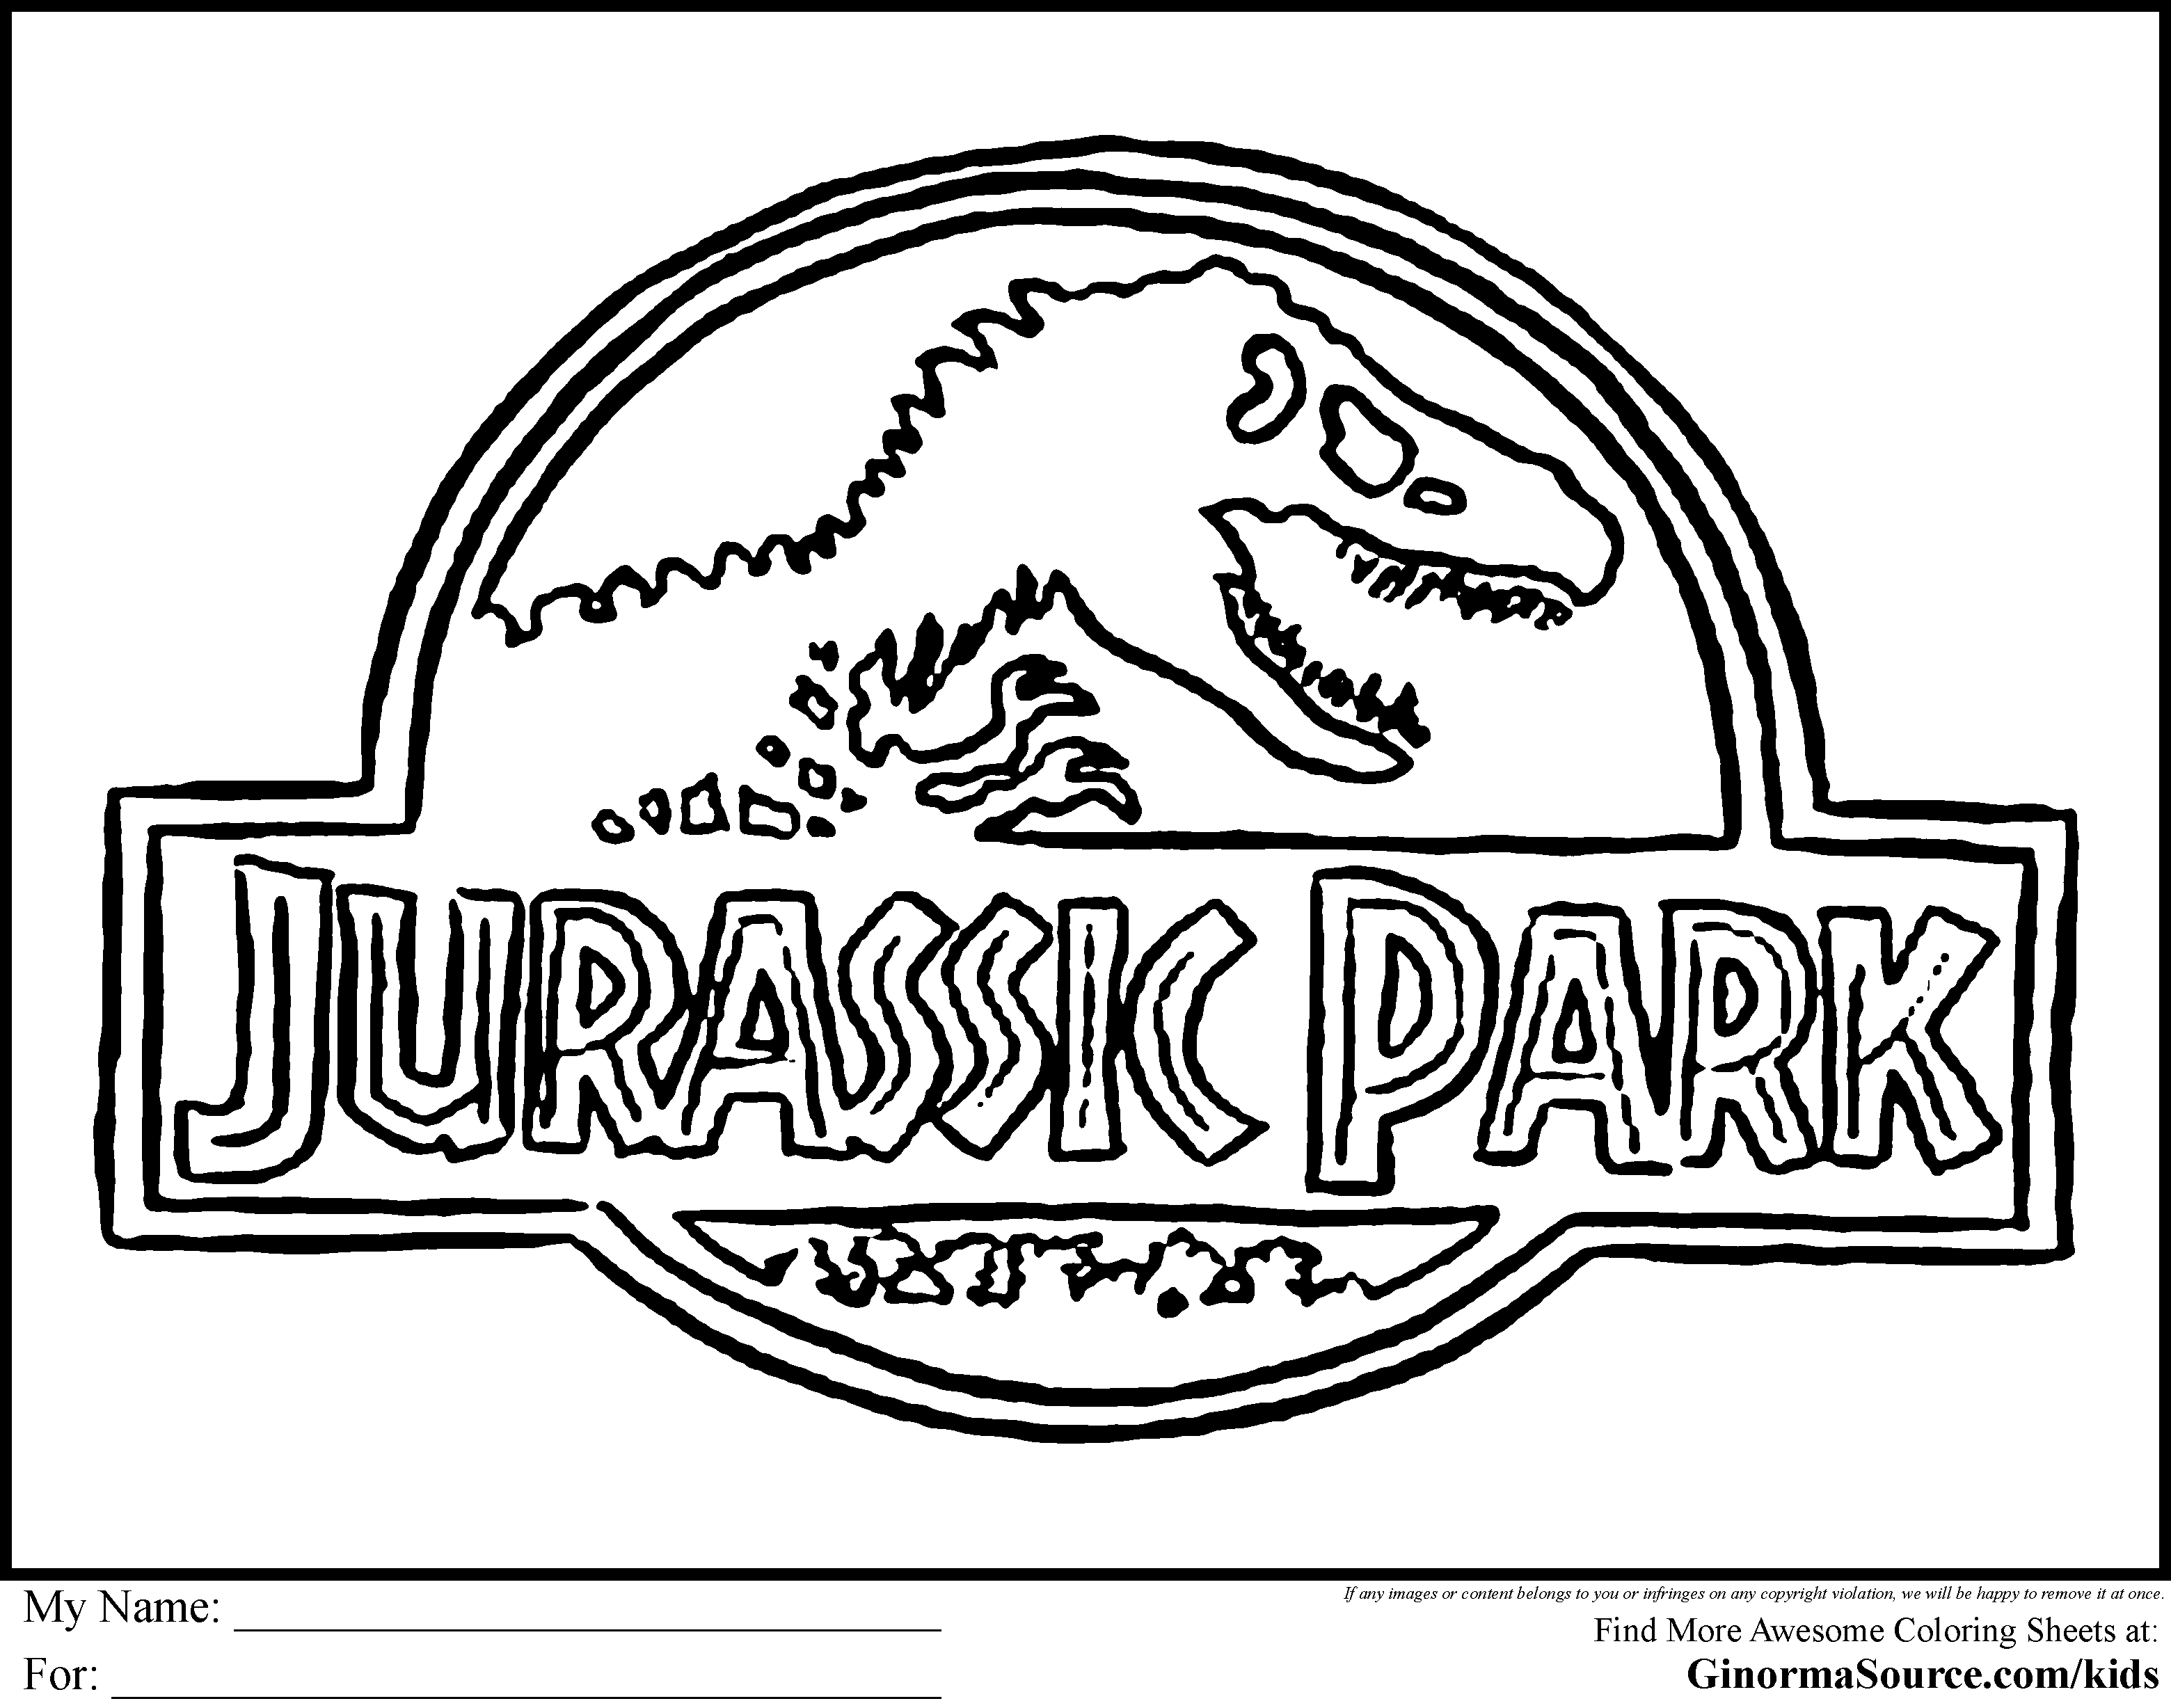 jurassic park coloring pages - Google Search | Color Book | Pinterest